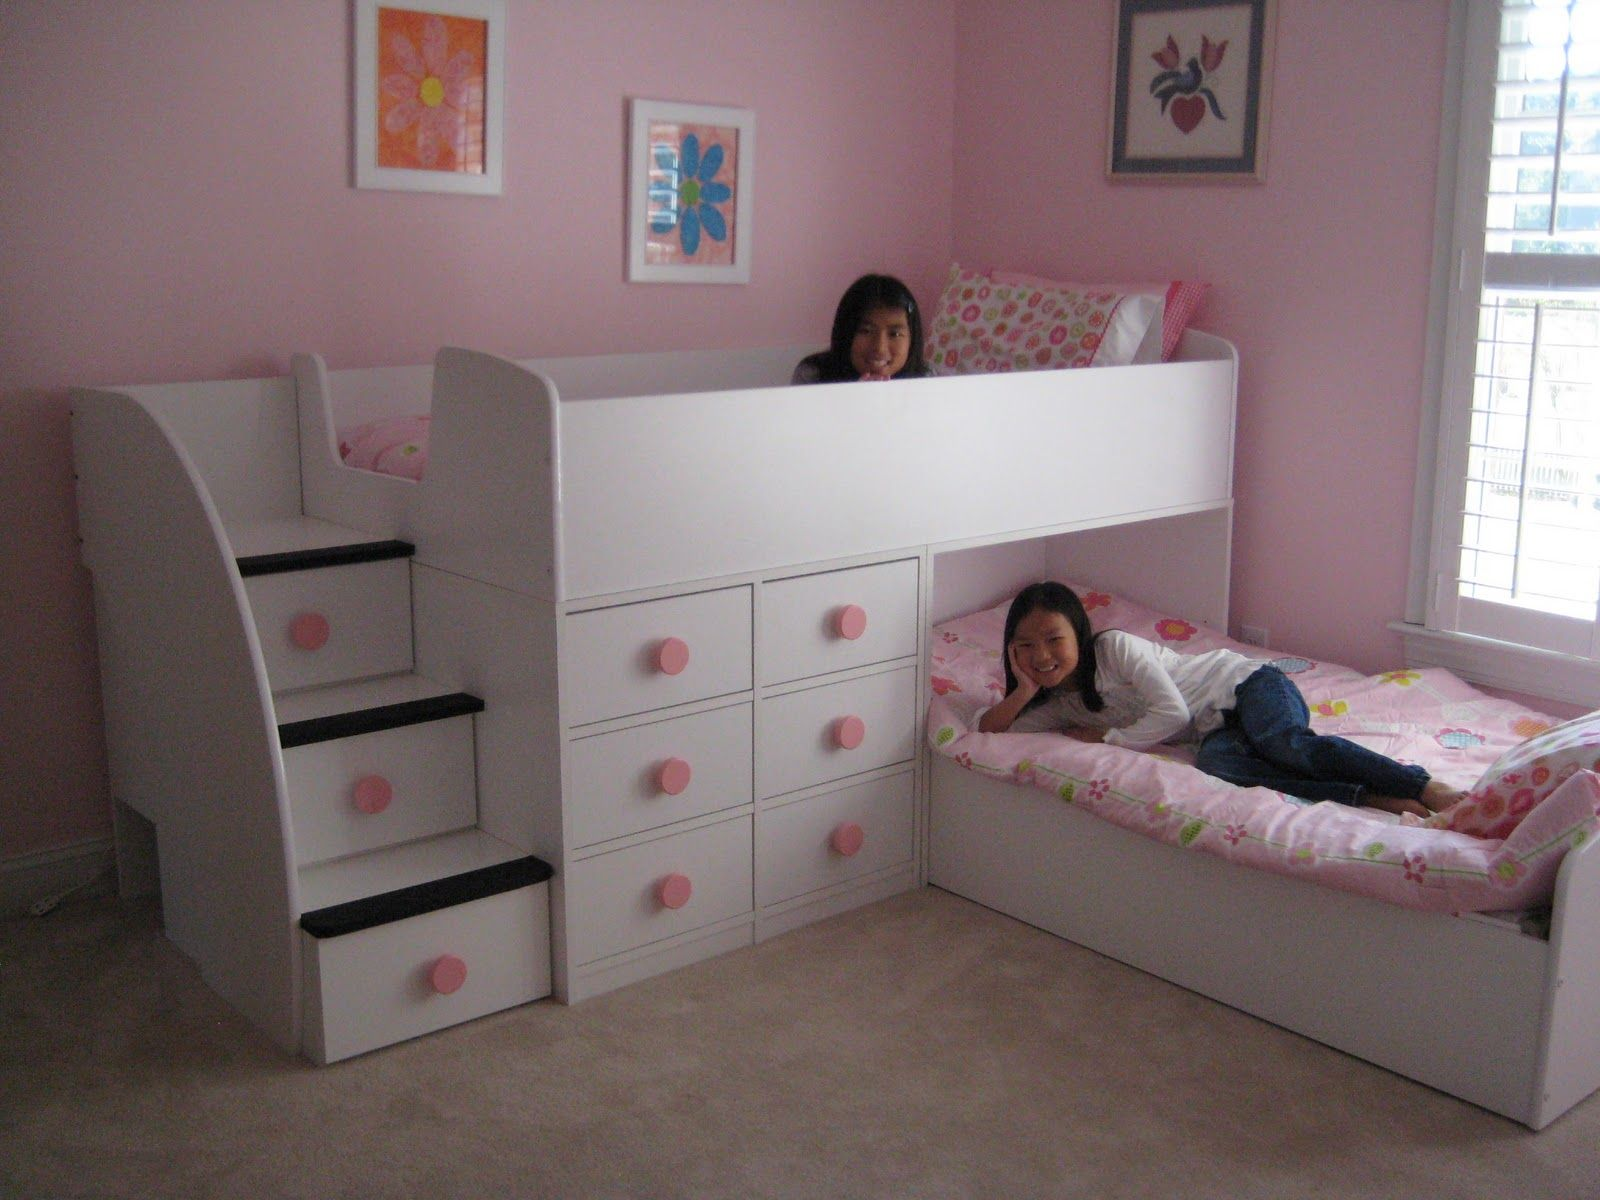 Bunk beds for girls and boys - 17 Best Ideas About Loft Bunk Beds On Pinterest Kids Bunk Beds Kid Loft Beds And Girls Bunk Beds